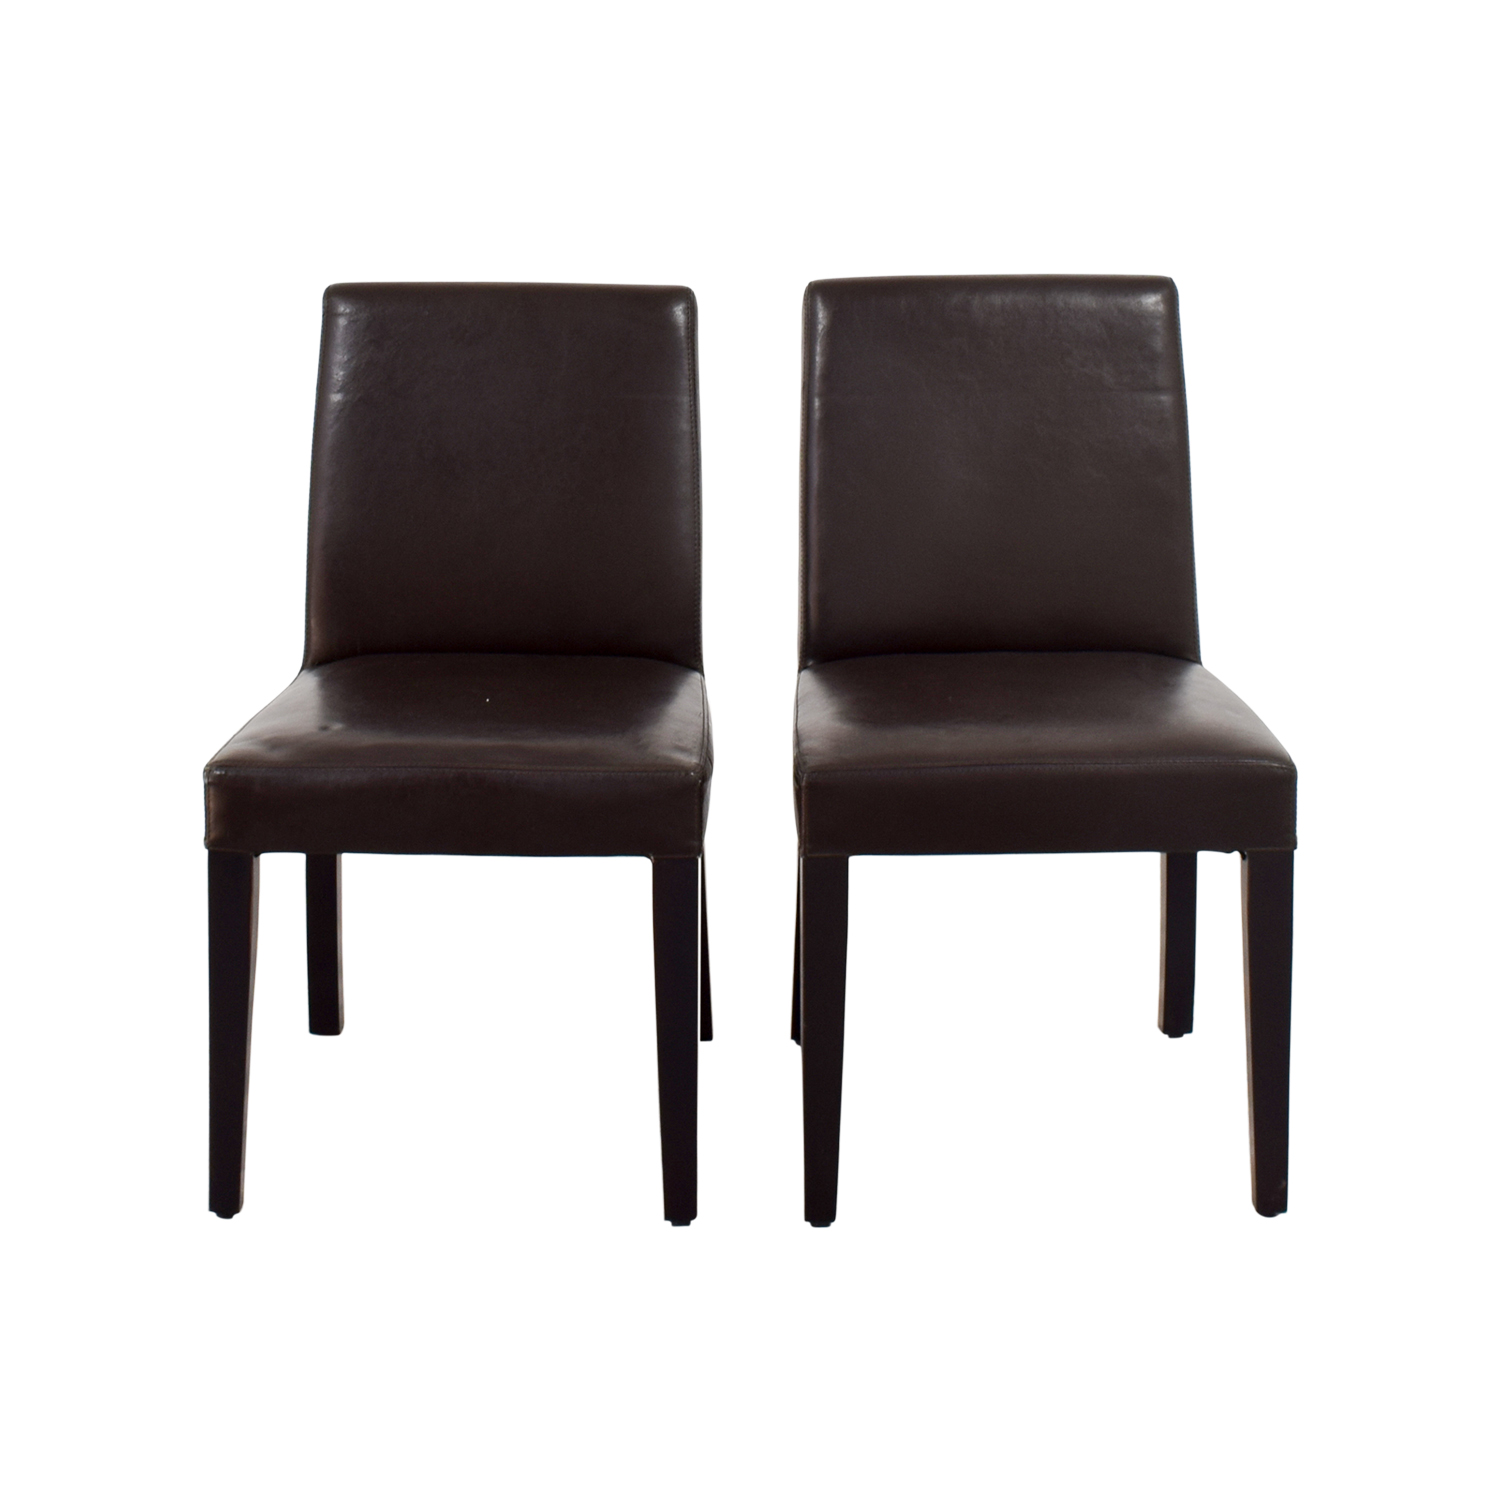 Crate And Barrel Dining Room Chairs: Crate & Barrel Crate & Barrel Brown Leather